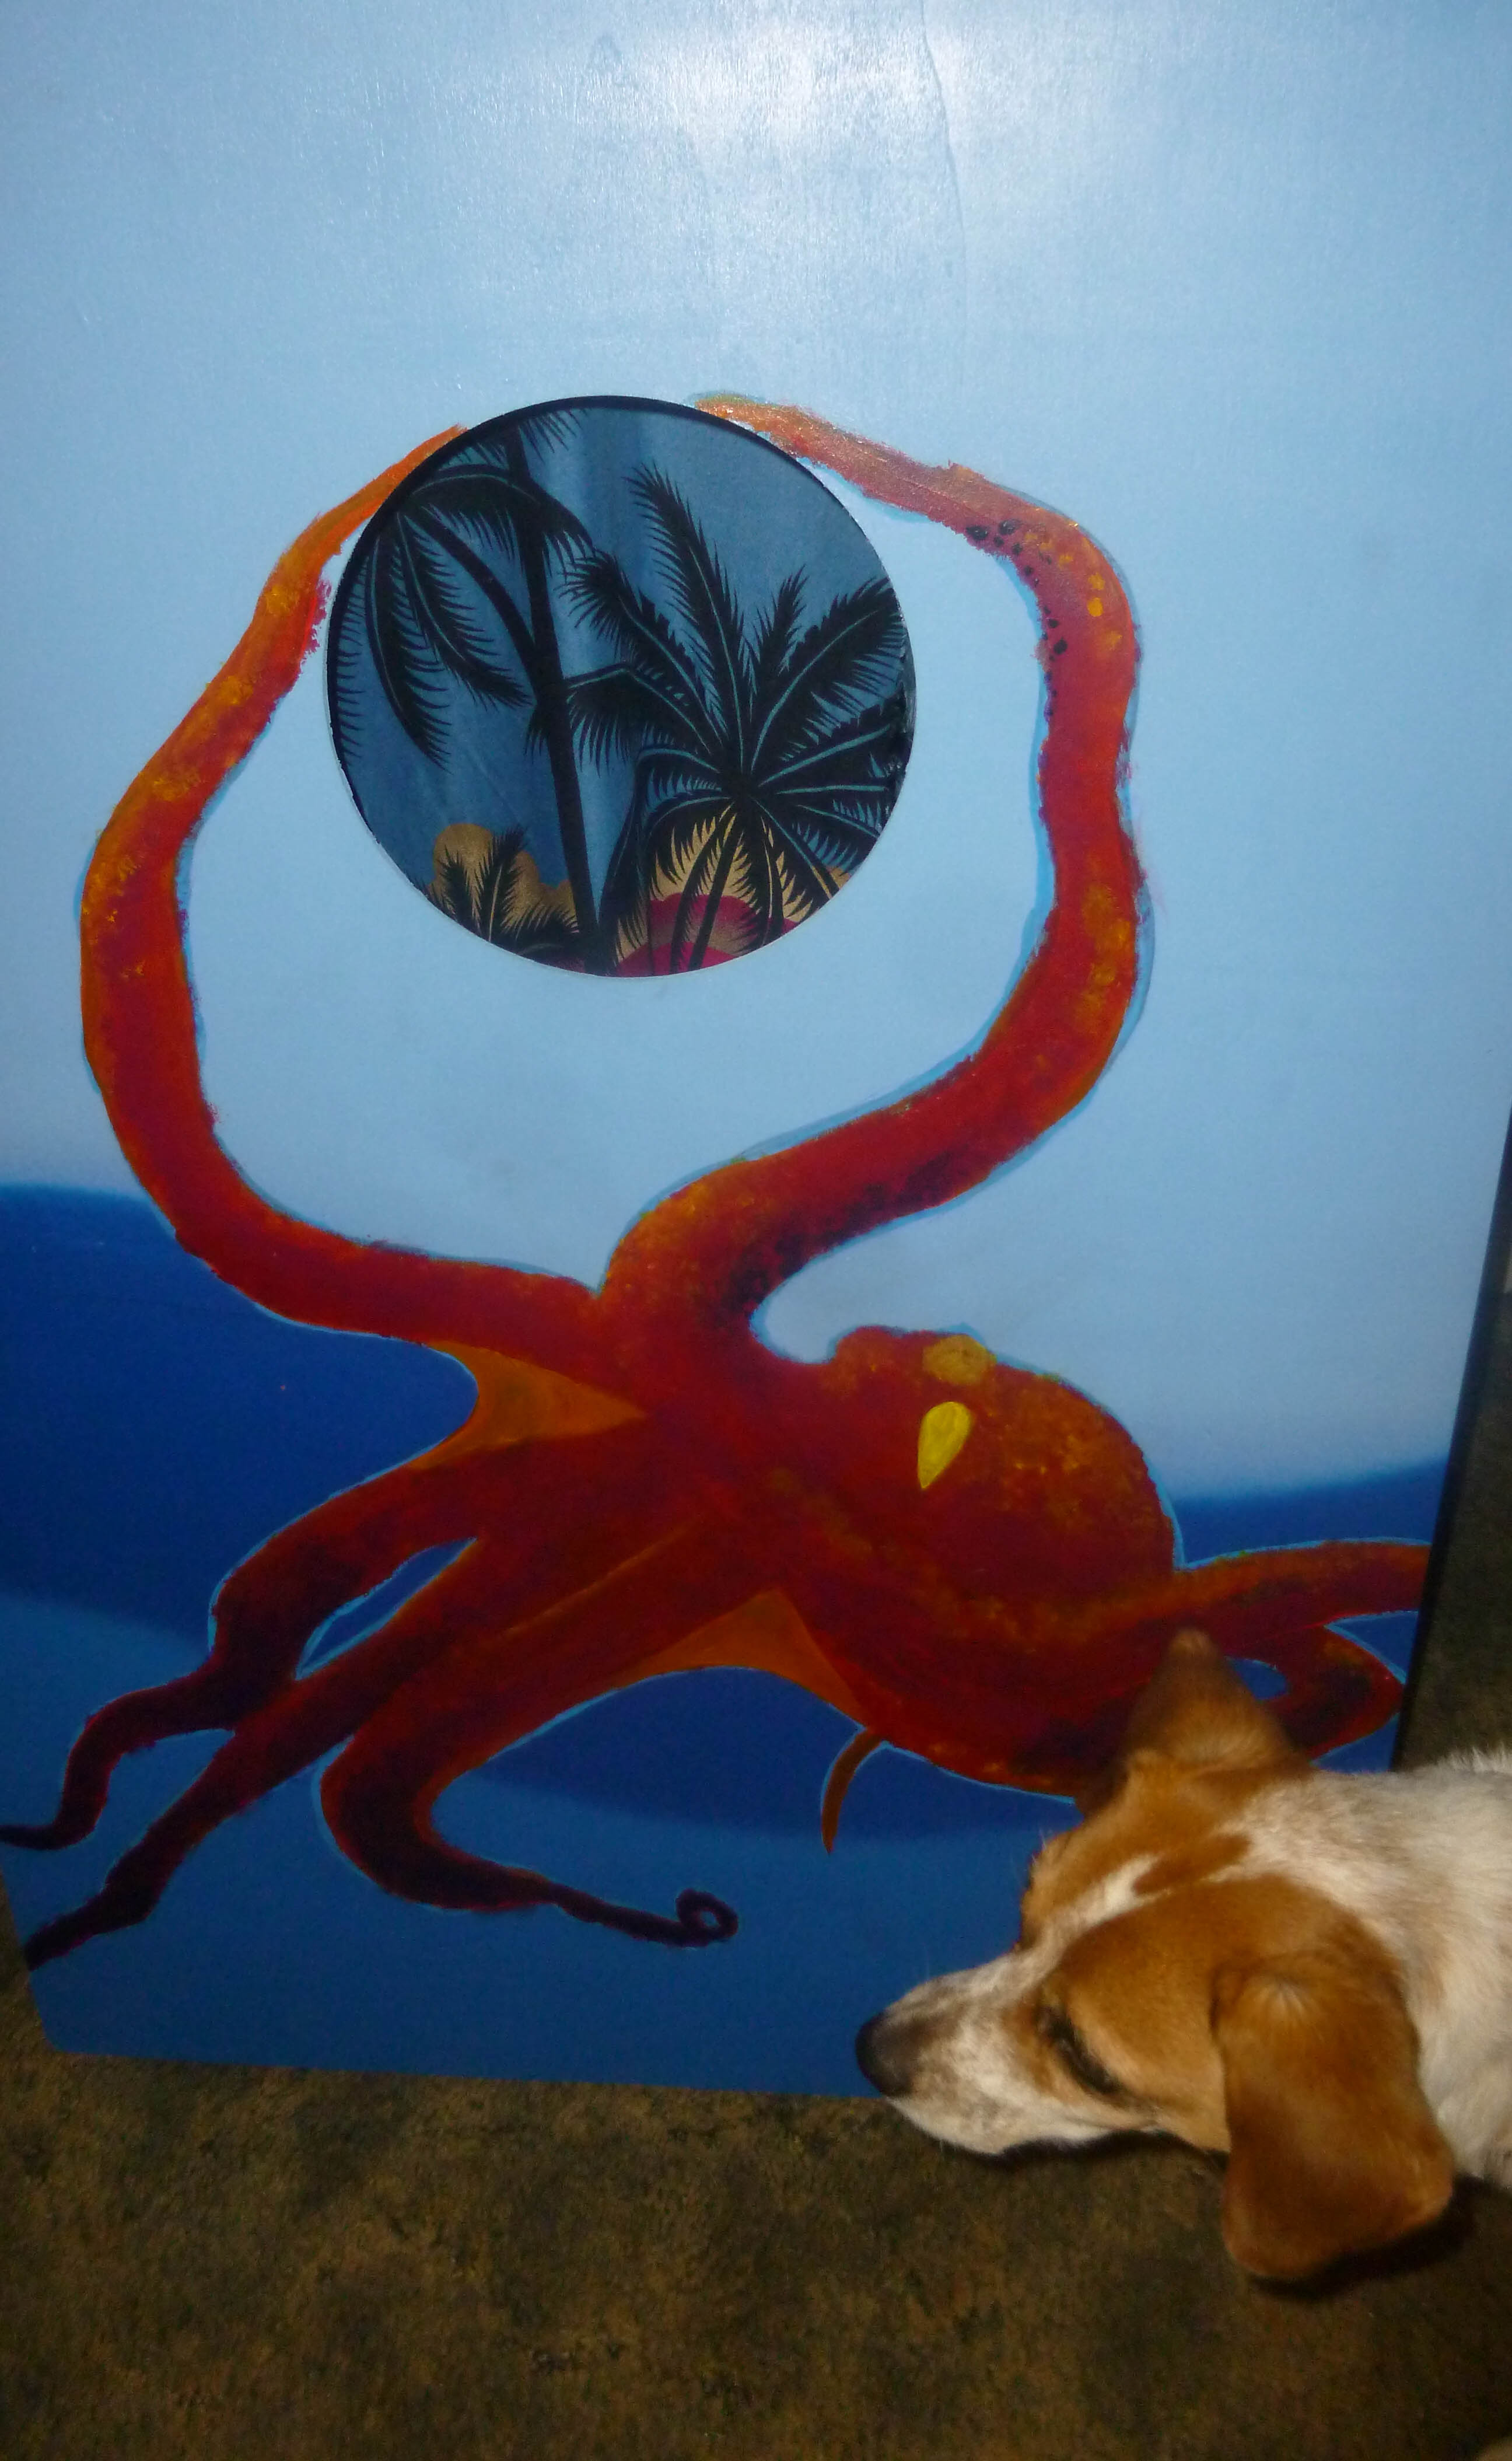 octopus and dog-1